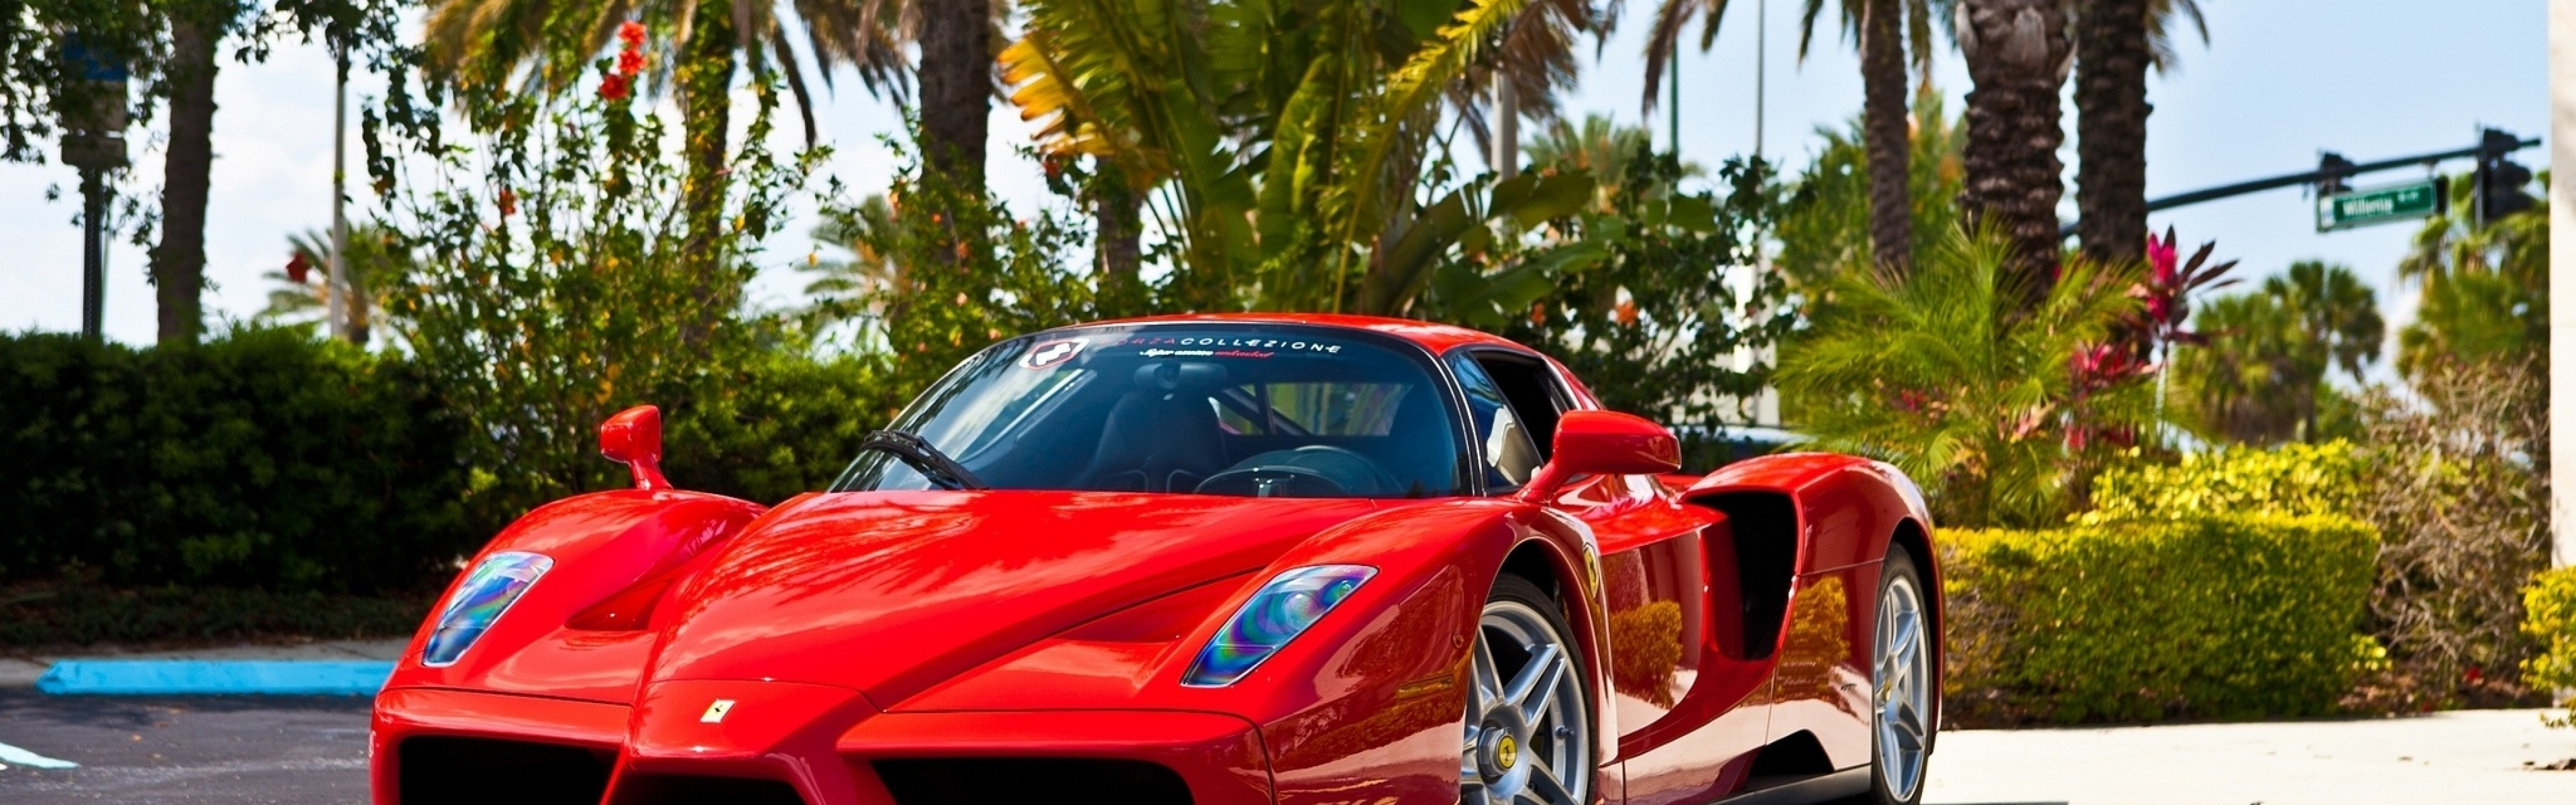 3840x1200  Wallpaper ferrari, enzo, red